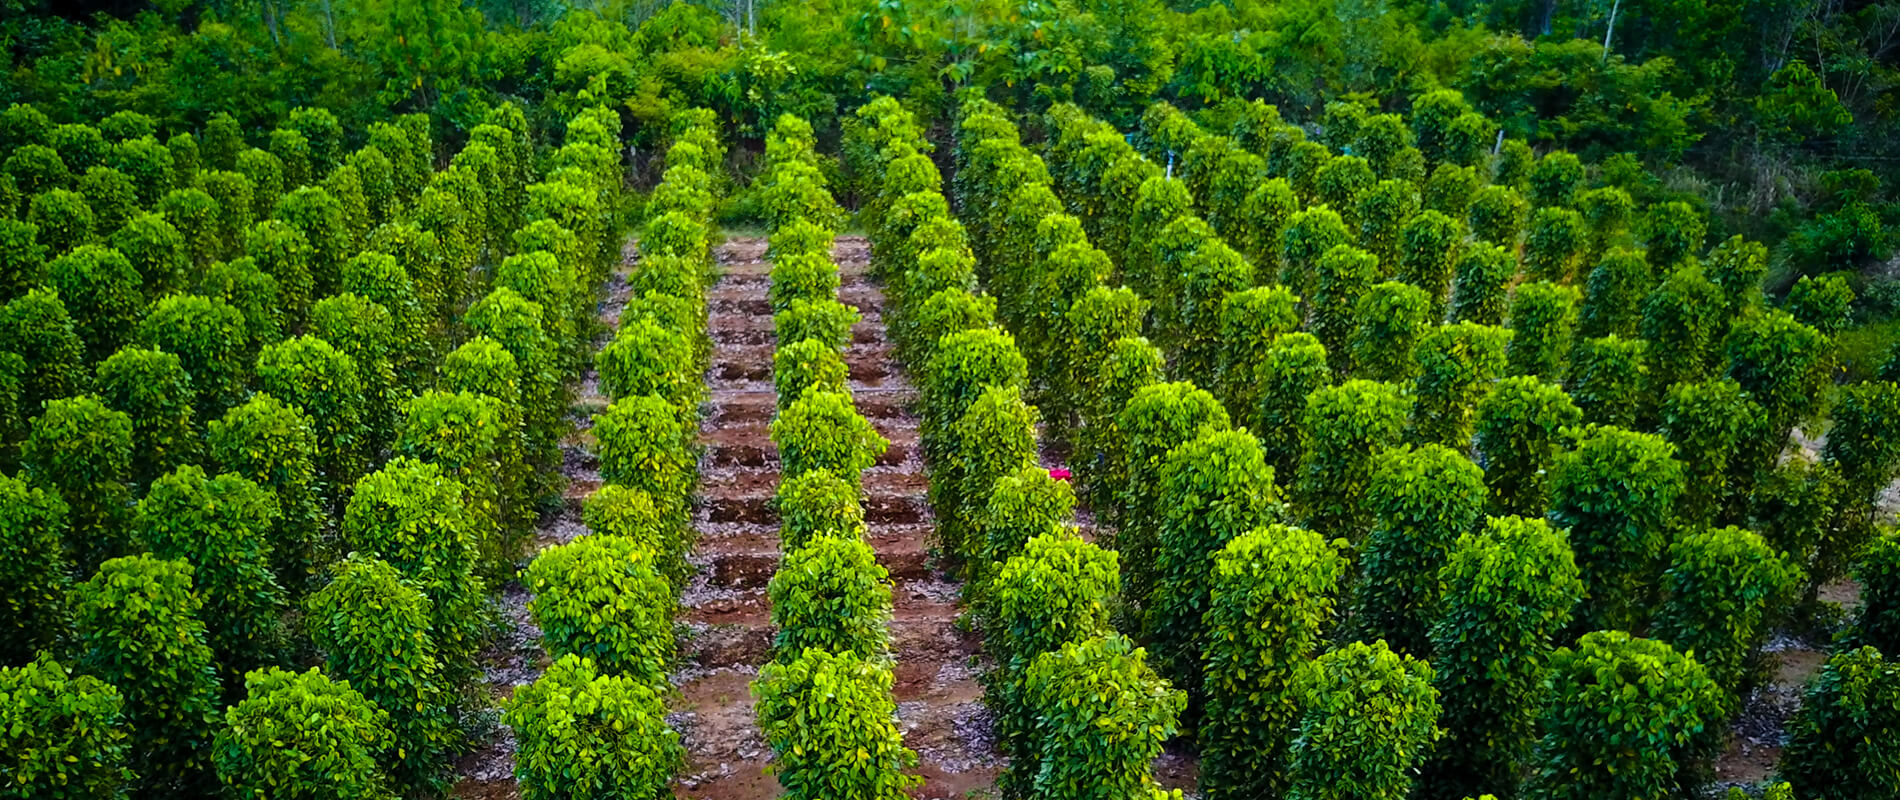 The Stunning Plantations of Phu Quoc Pepper